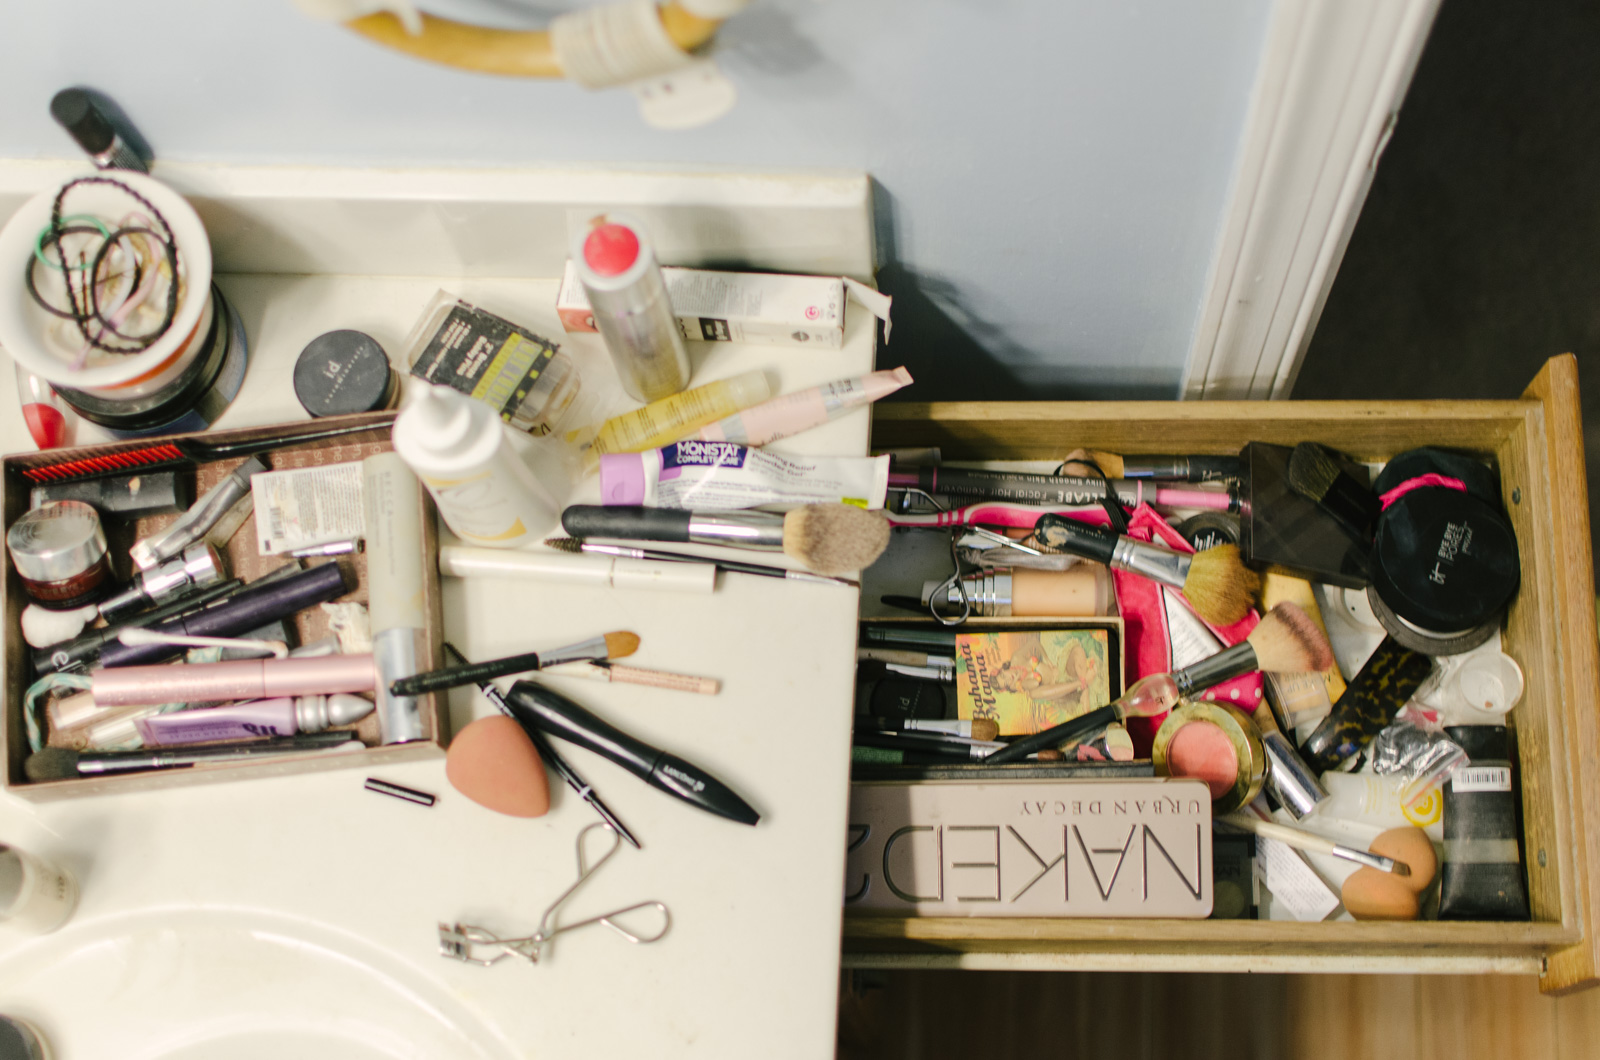 DIY makeup drawer organization - dollar store makeup drawer organization | Head to bylaurenm.com to see the after!